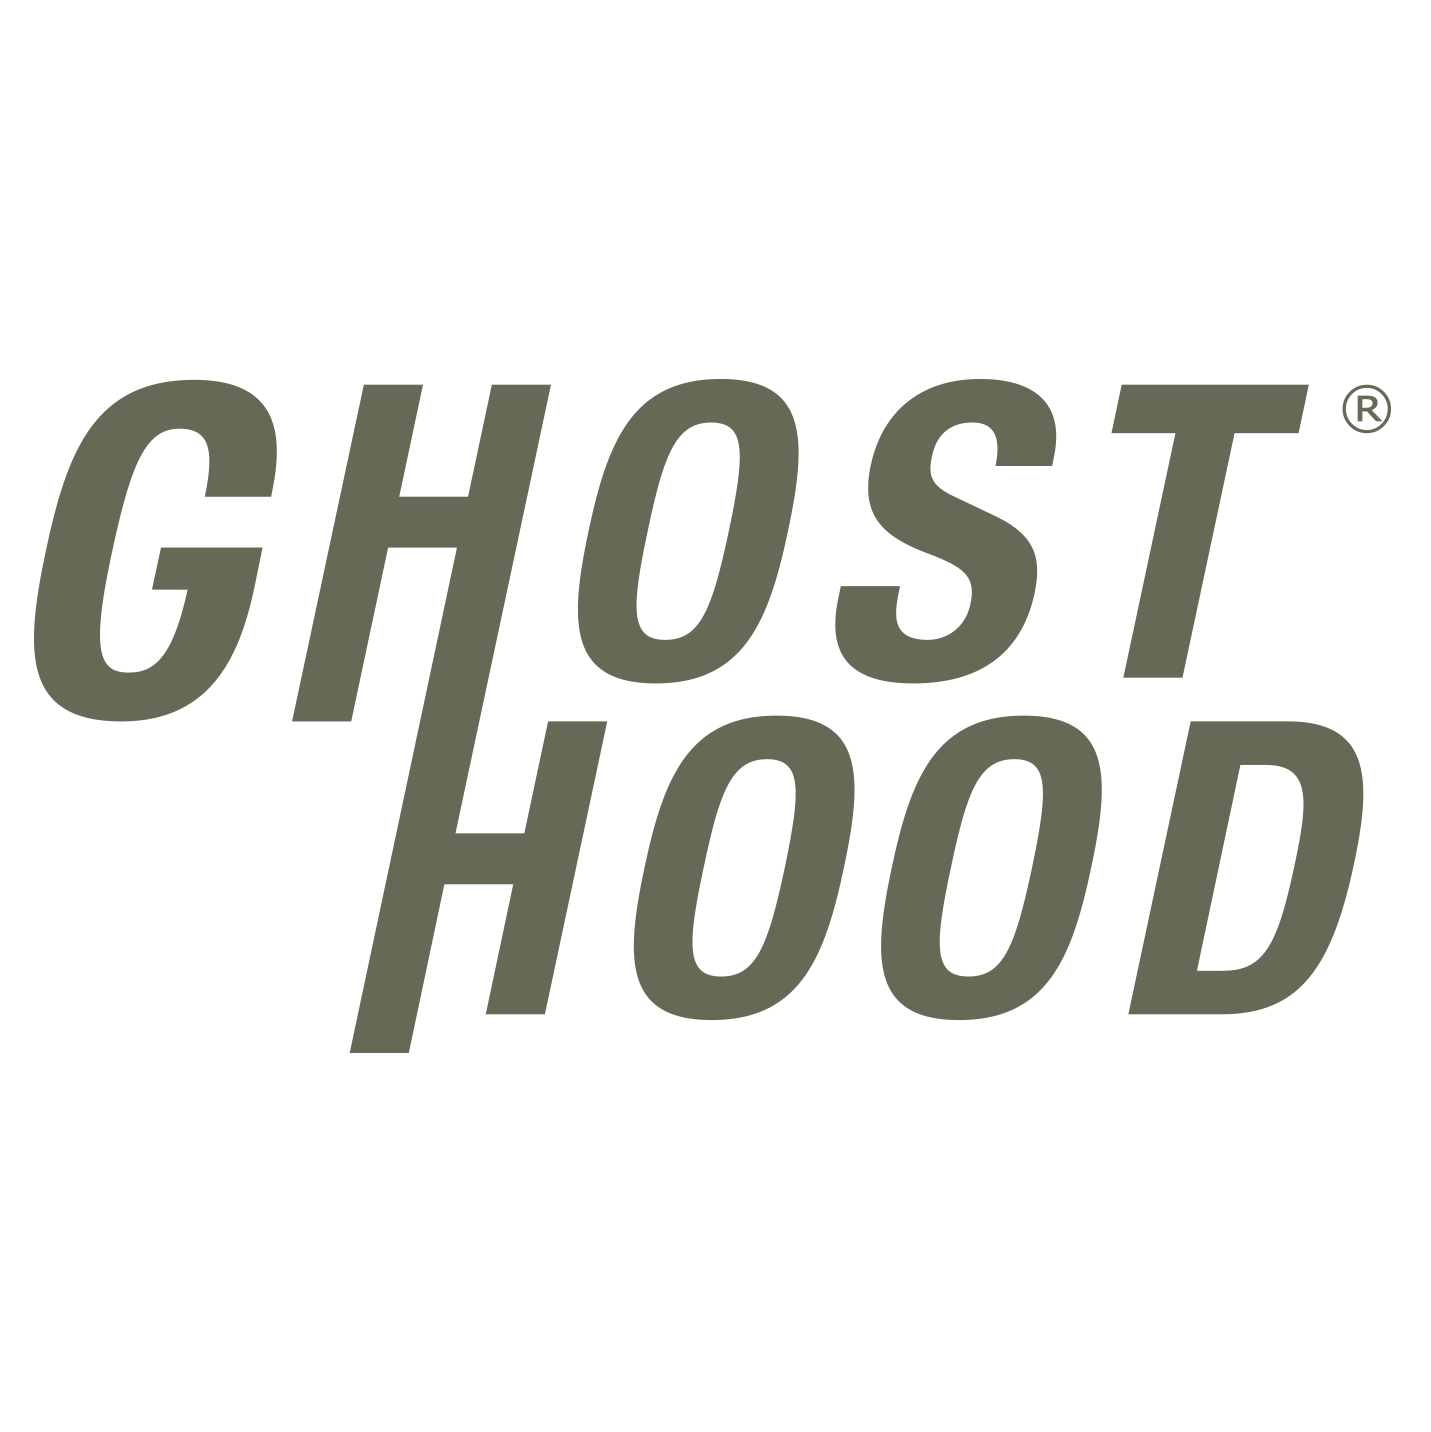 Ghosthood